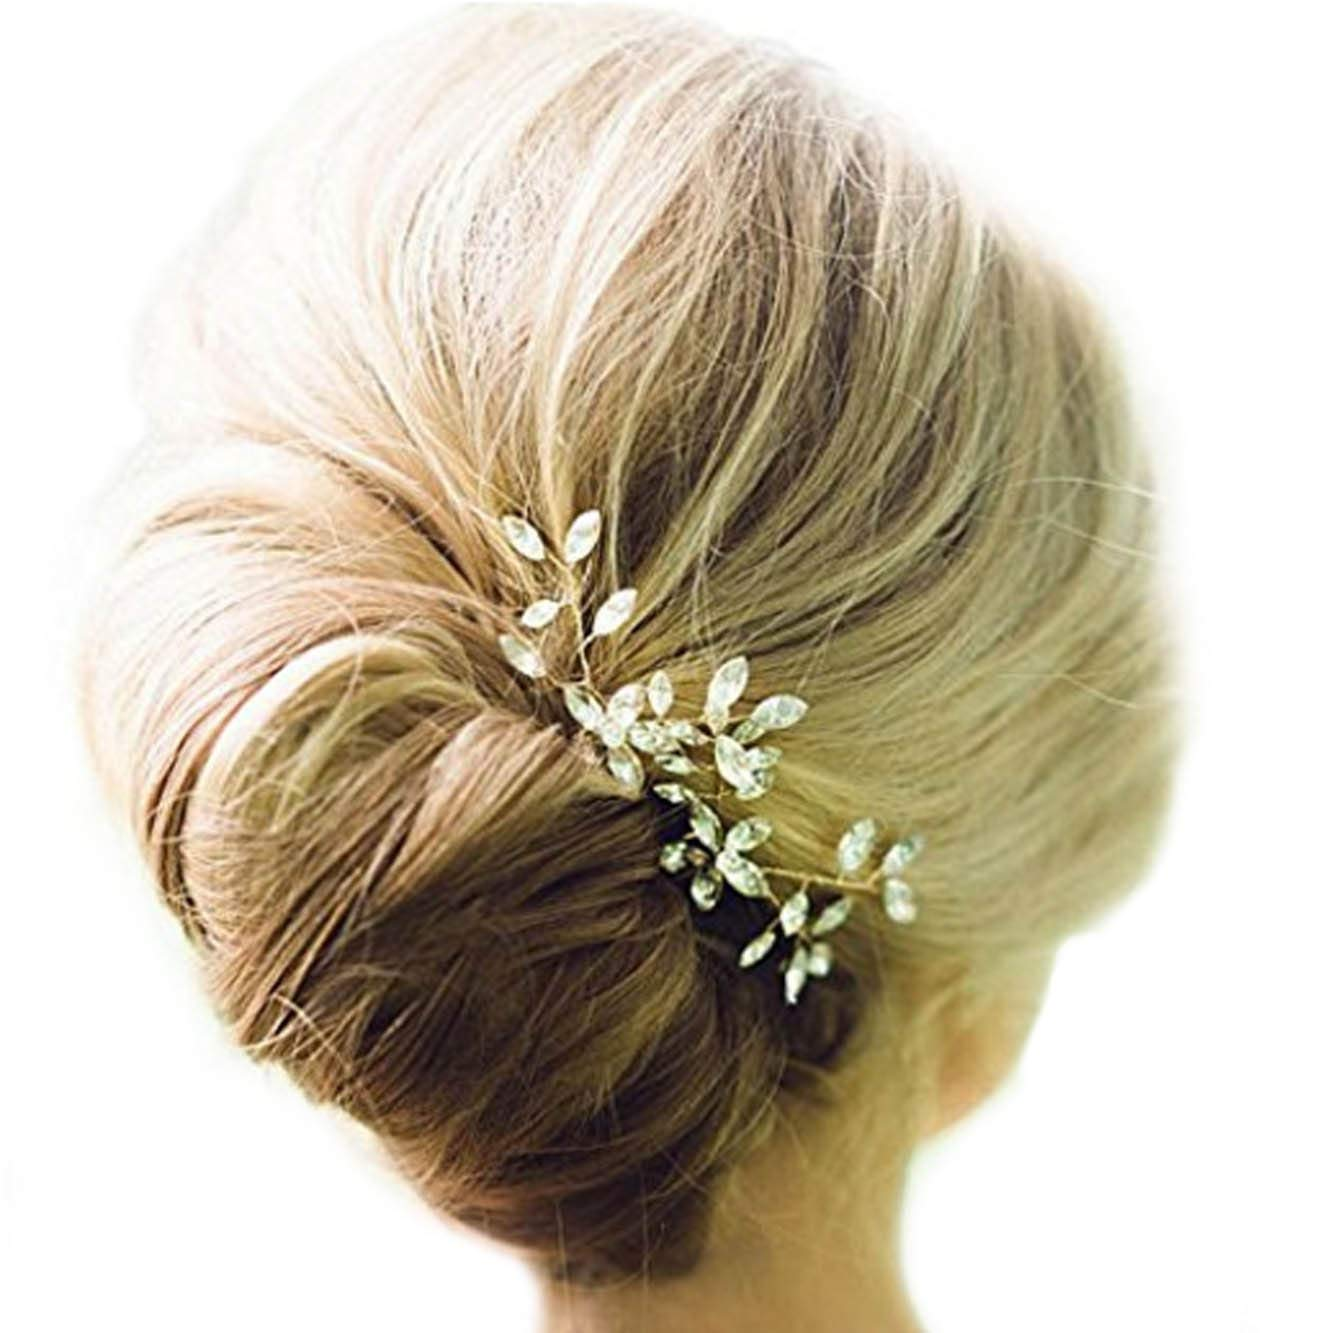 Unicra Wedding Big Rhinestone Hair Pins Decorative Wedding Bridal Hair Accessories for Brides and Bridesmaids Pack of 2 (Gold)